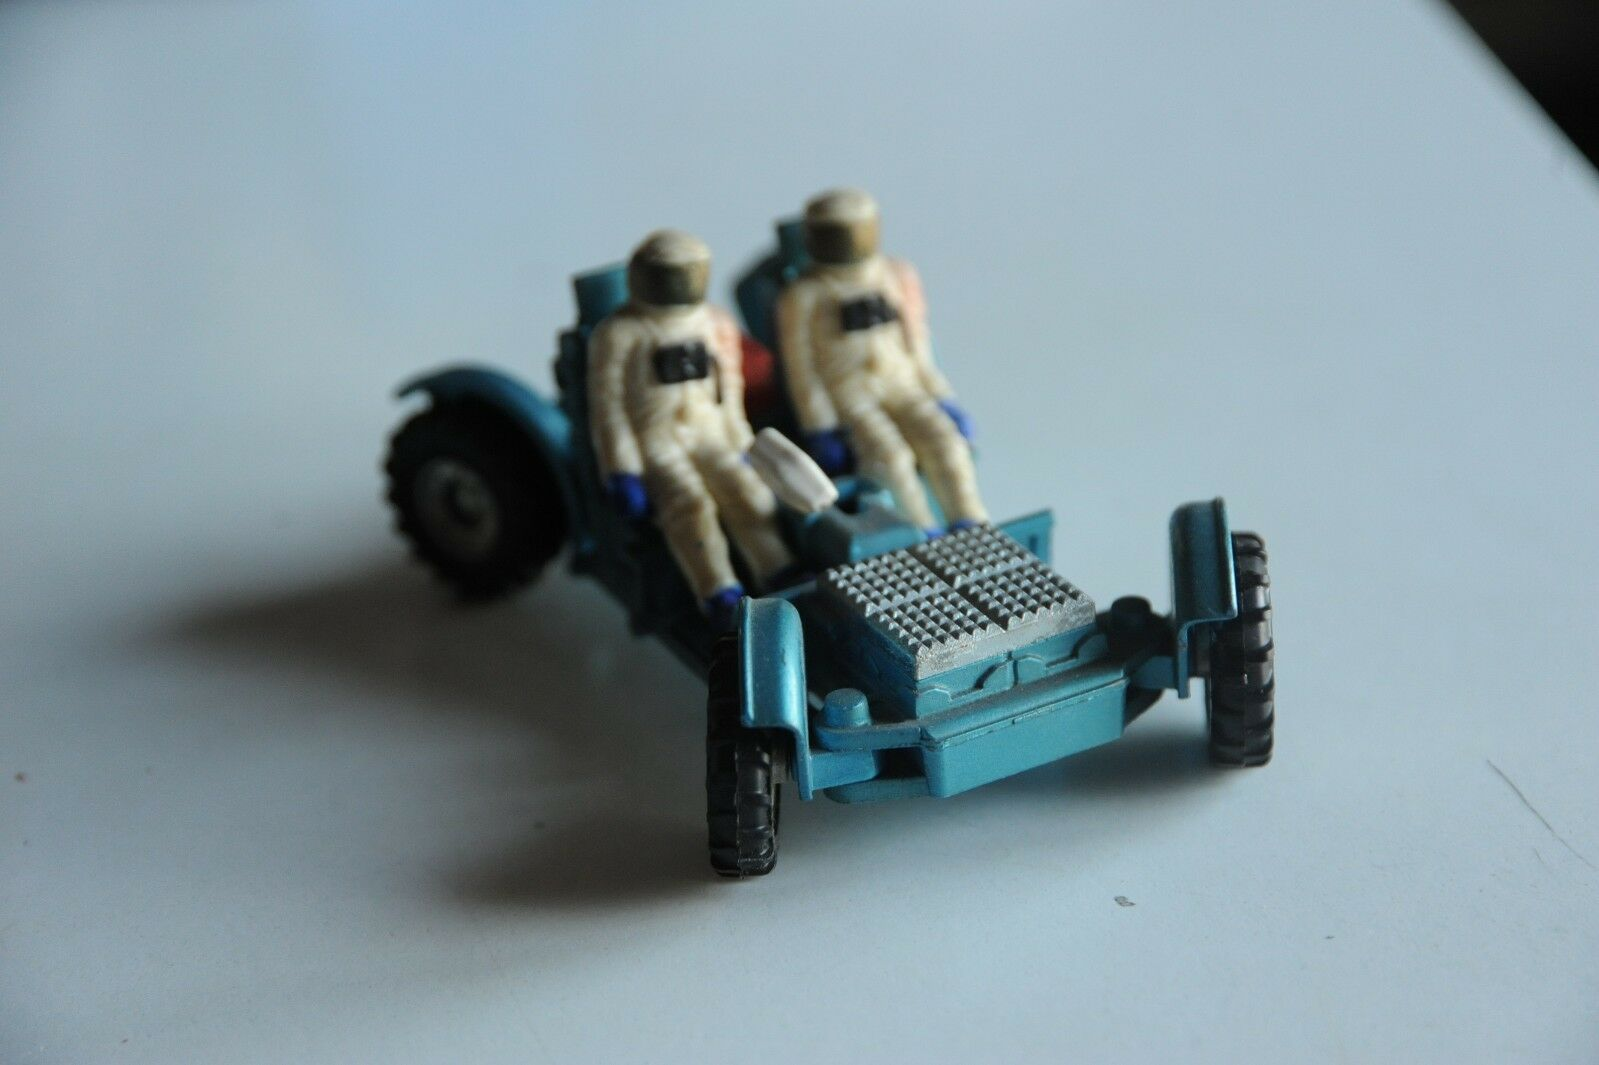 DINKY TOYS - LUNAR ROVING VEHICLE MADE IN ENGLAND